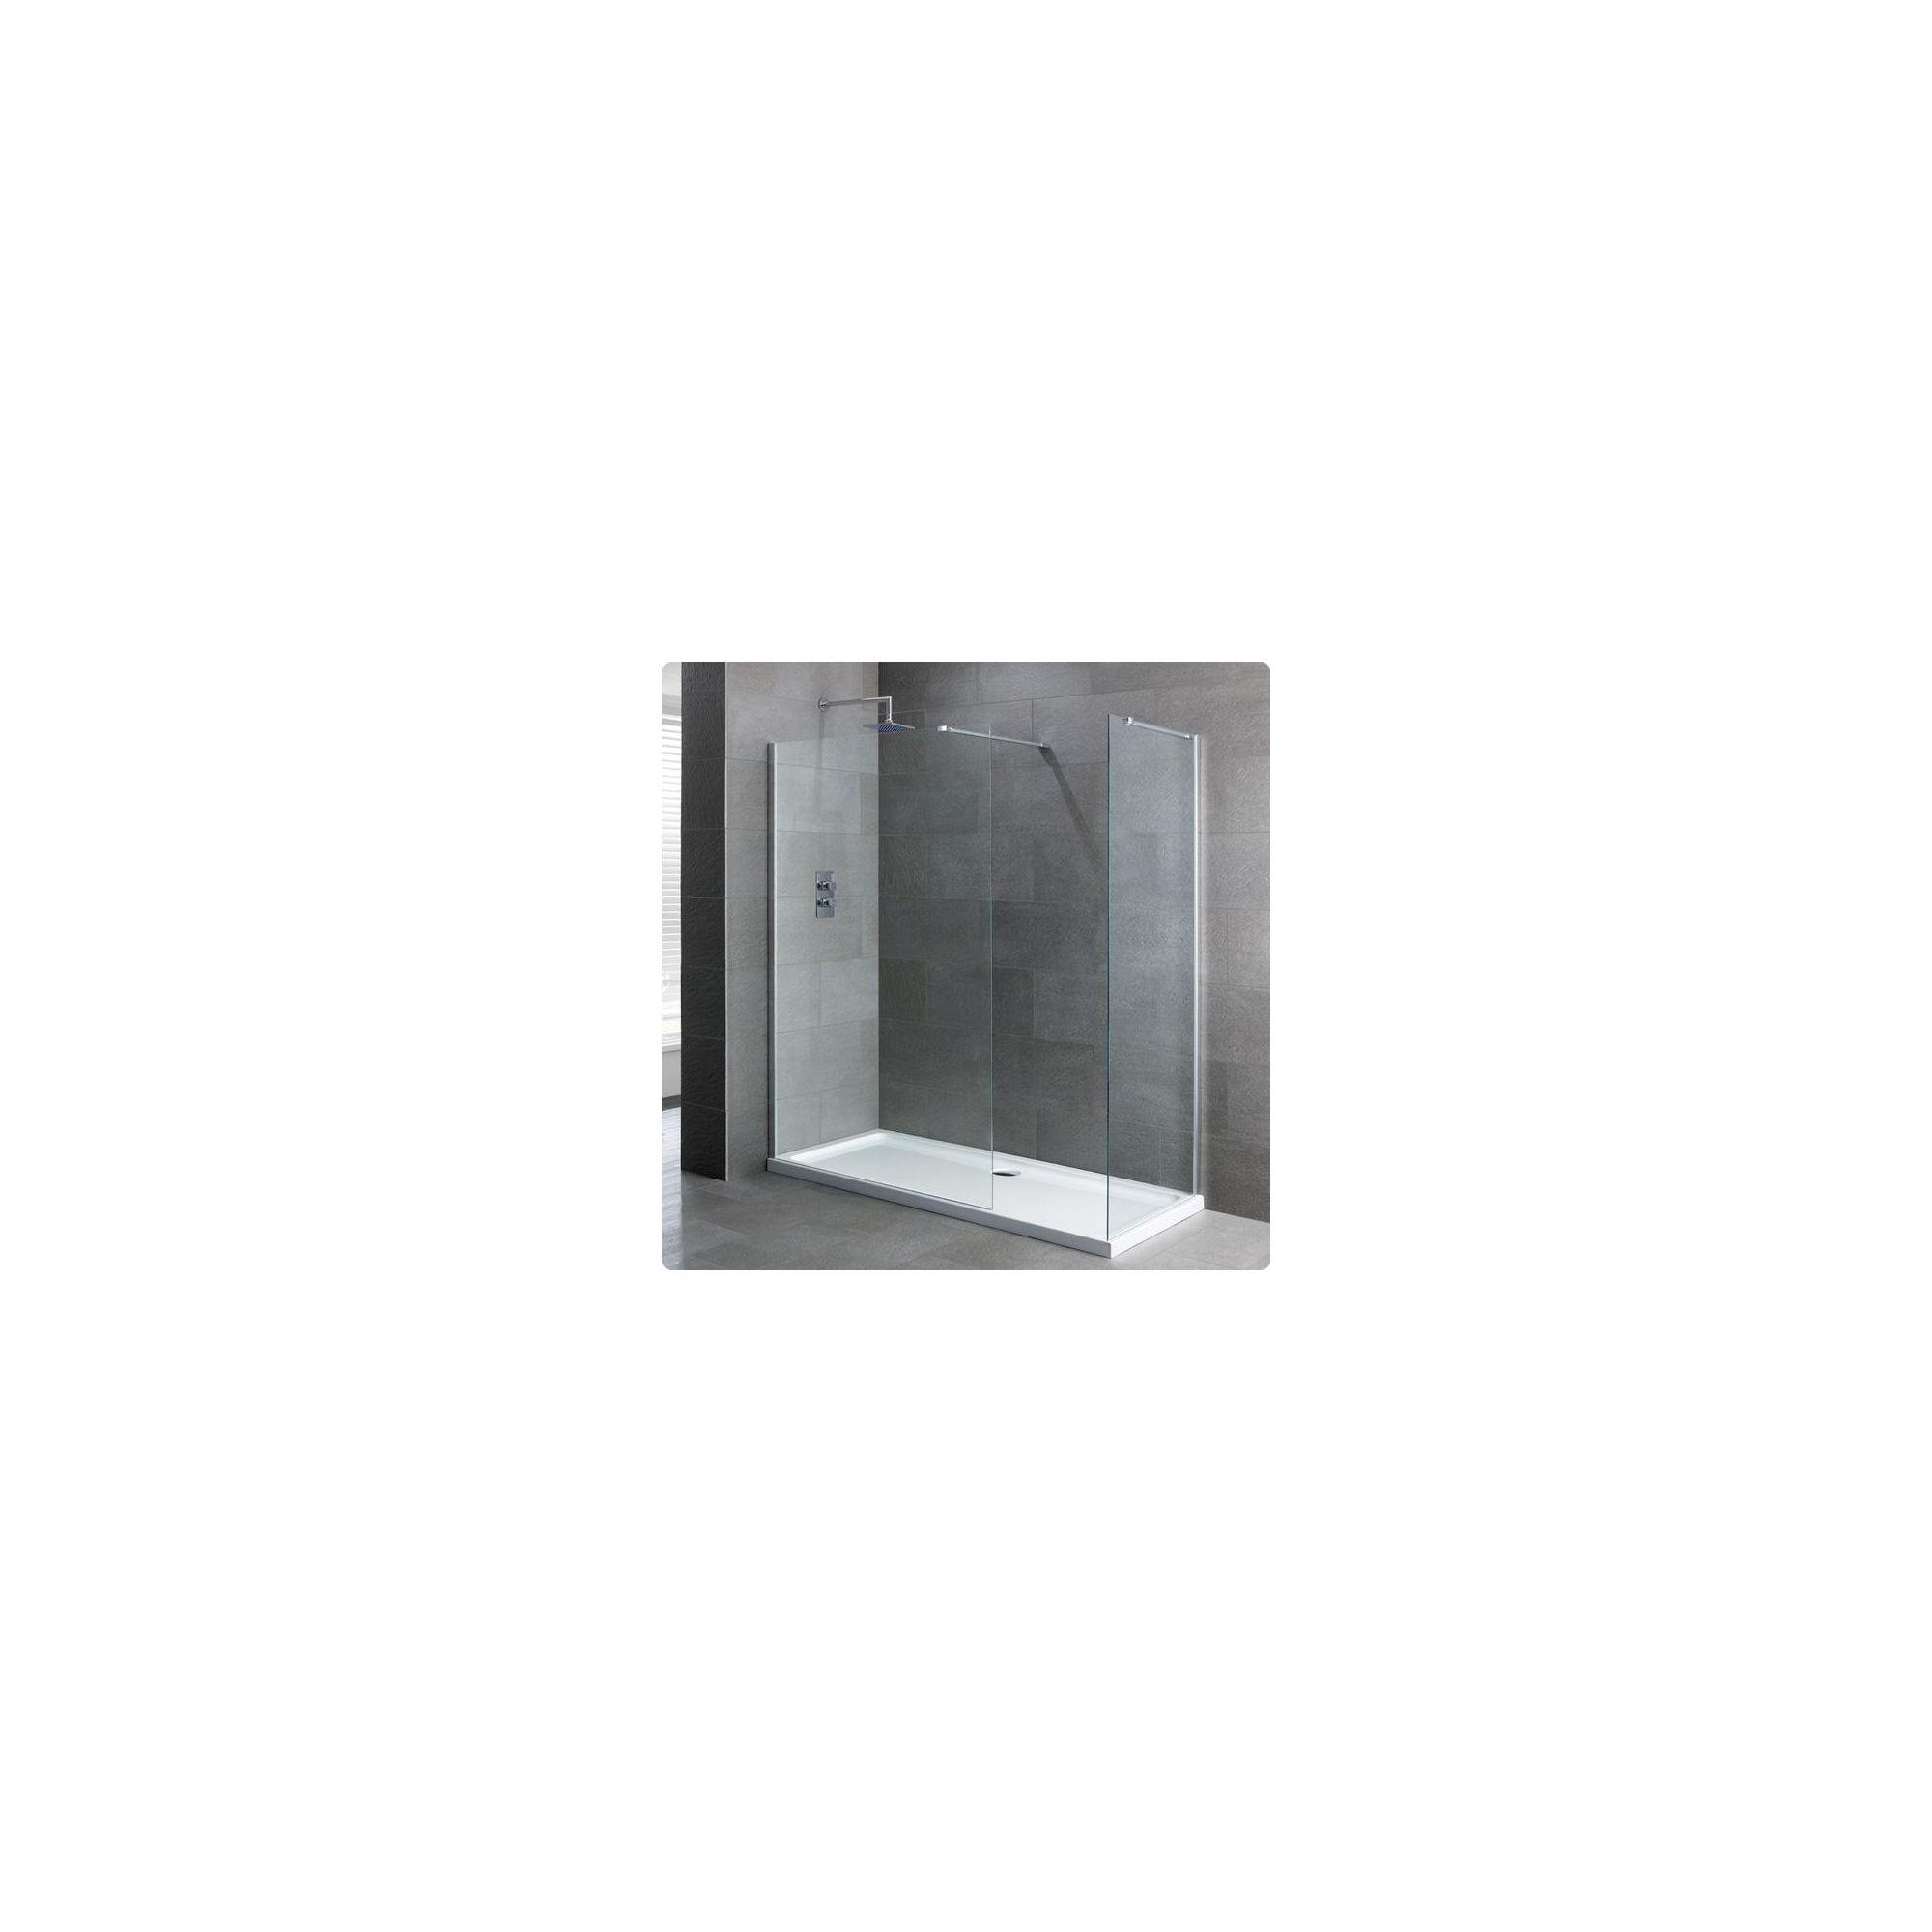 Duchy Select Silver Walk-In Shower Enclosure 1500mm x 760mm, Standard Tray, 6mm Glass at Tesco Direct